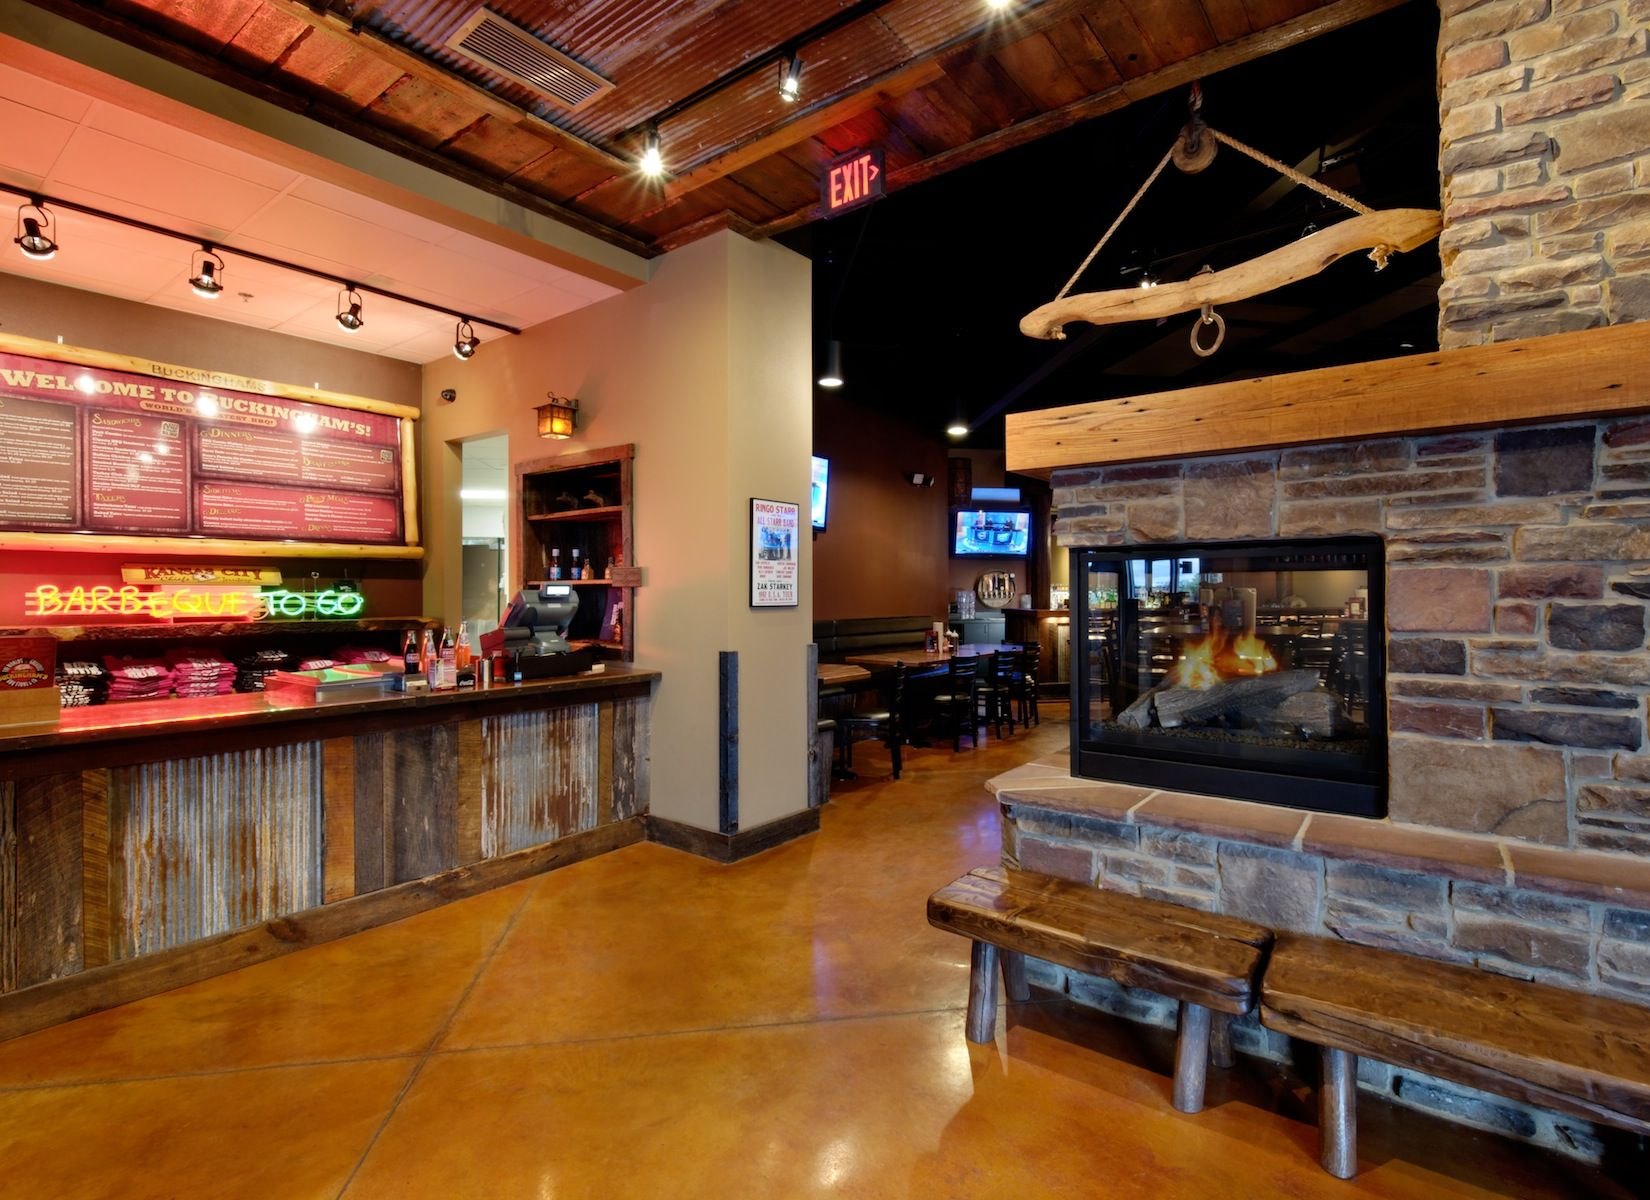 interior design dallas tx - Bbq restaurants, estaurant interior design and estaurant on ...